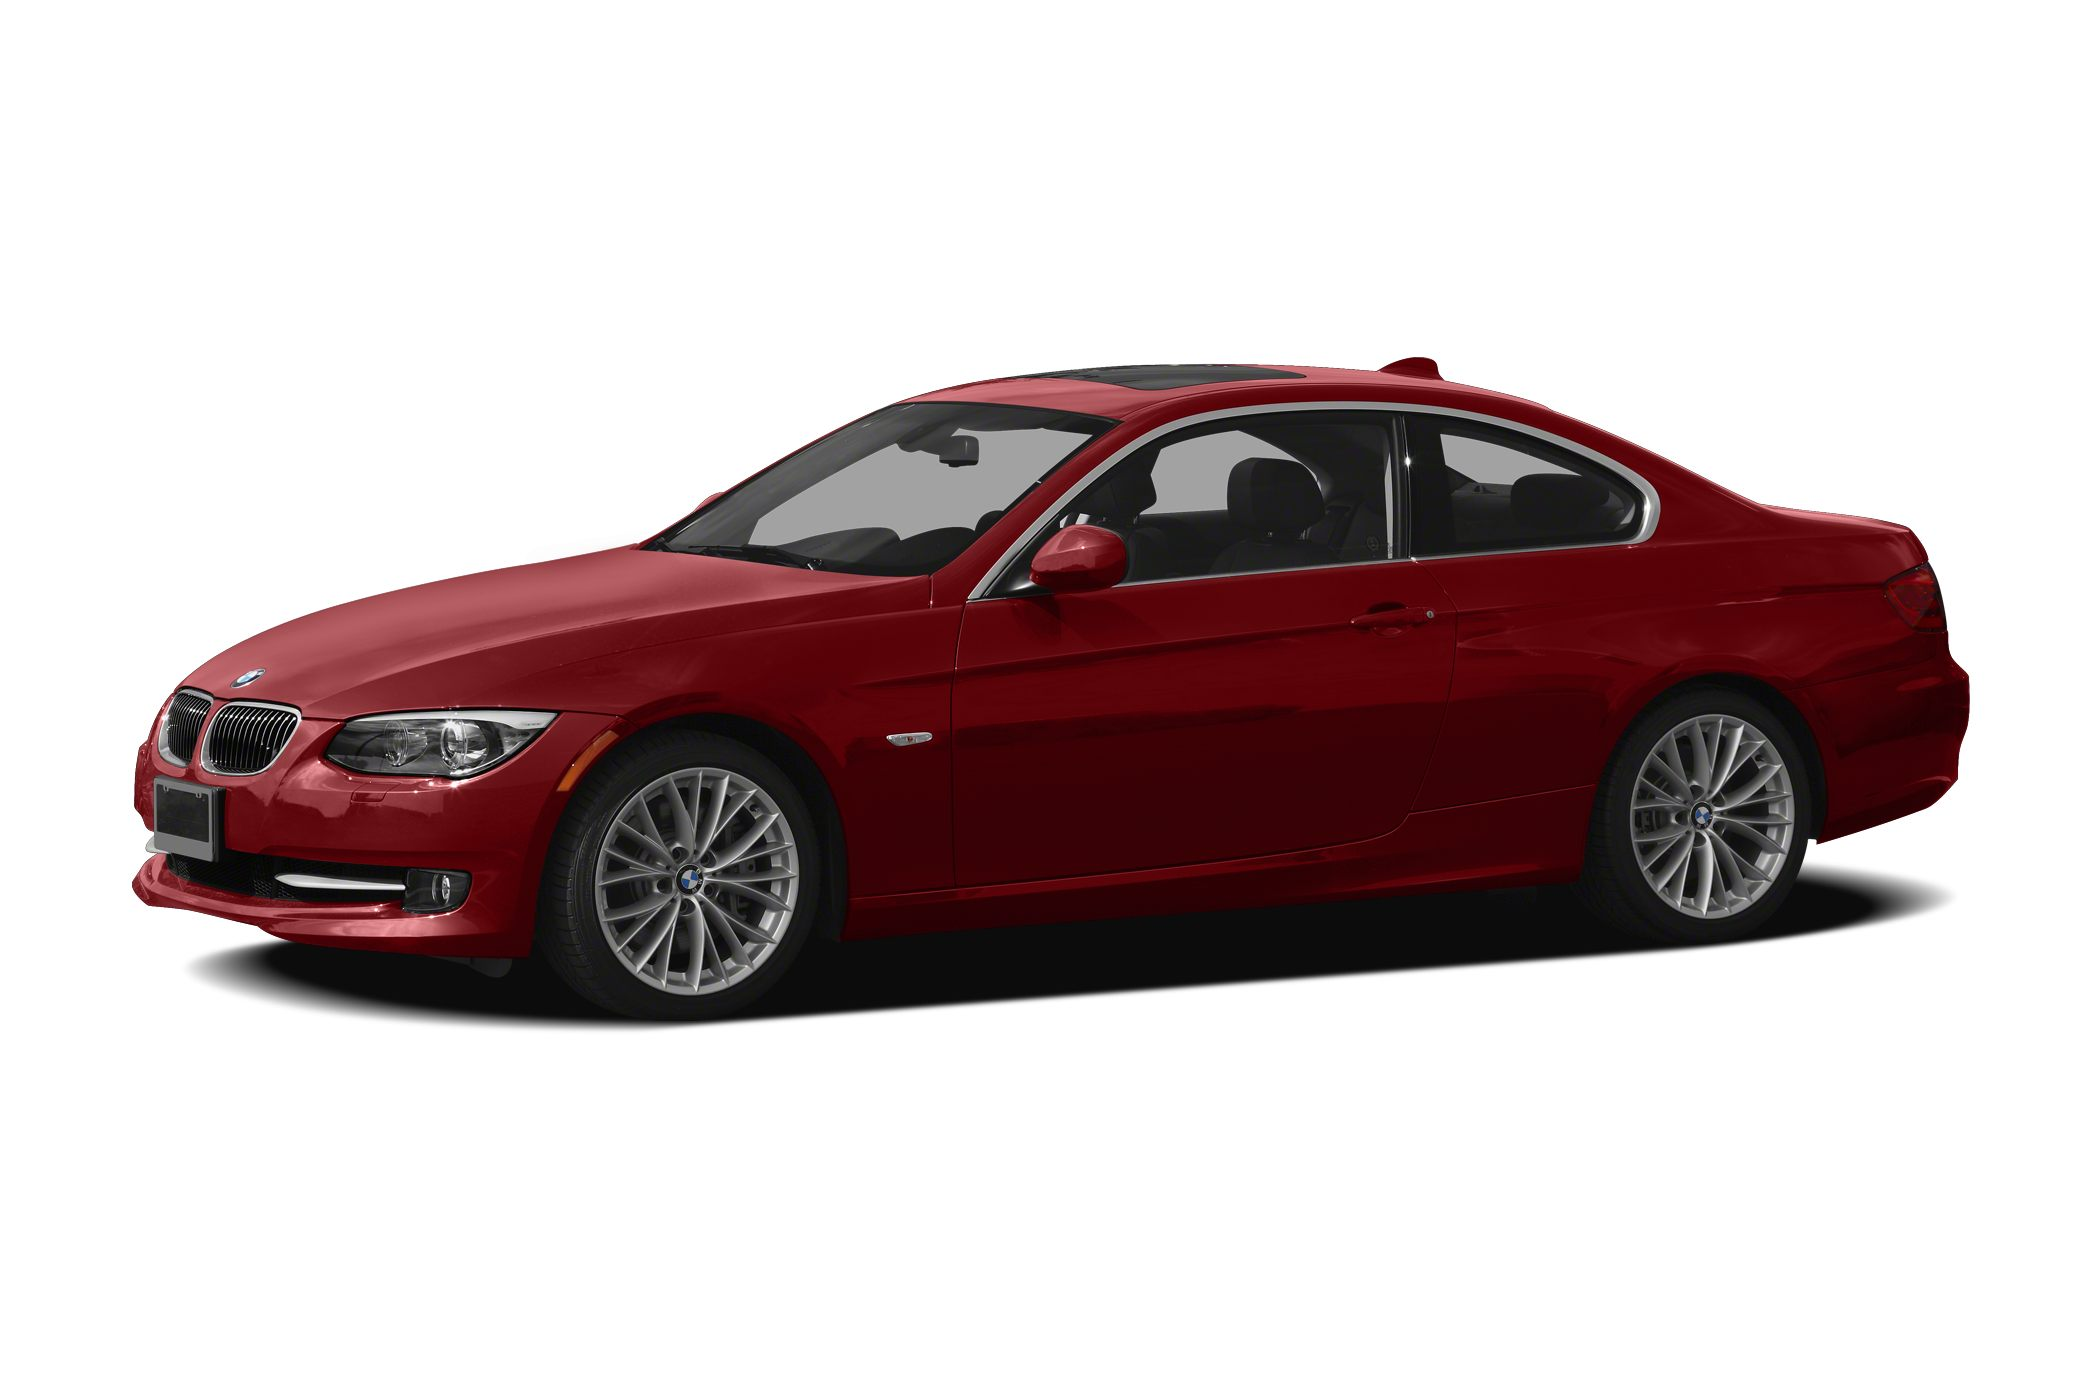 2012 BMW 335 Is Coupe for sale in Mechanicsburg for $38,500 with 23,700 miles